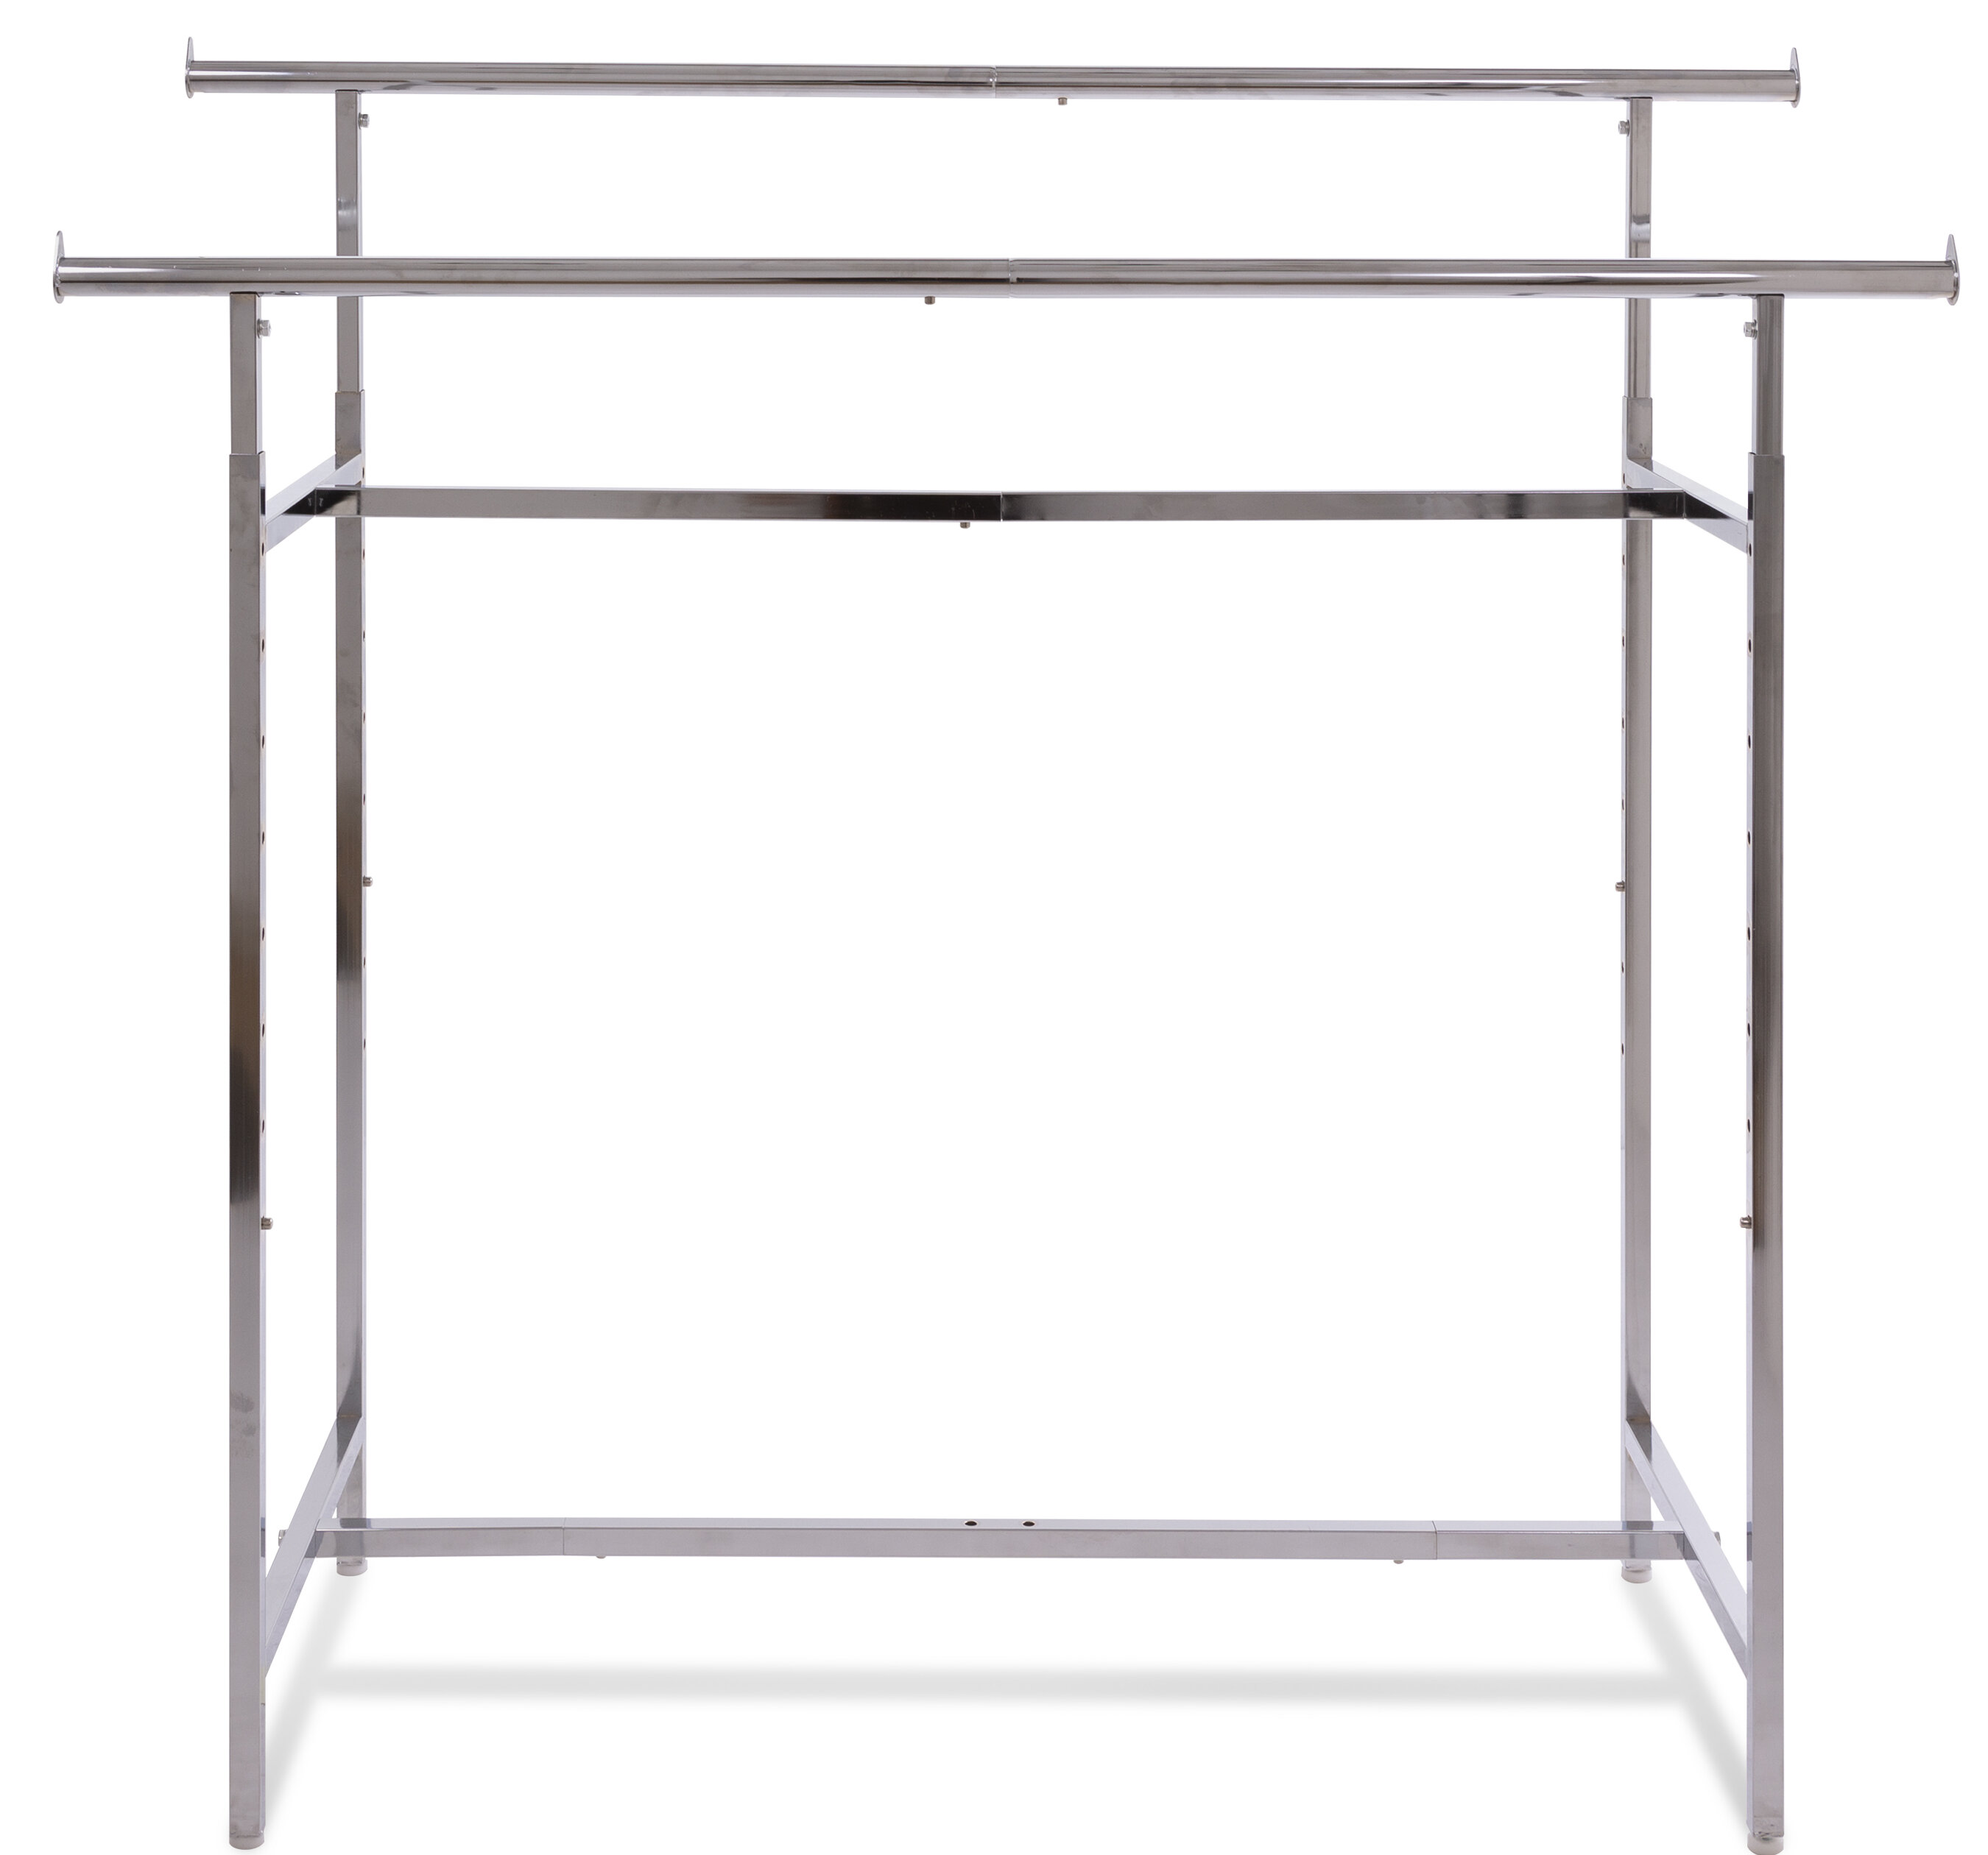 Rebrilliant Nathanial 60 W Adjustable Height Double Bar Clothing Rack Reviews Wayfair